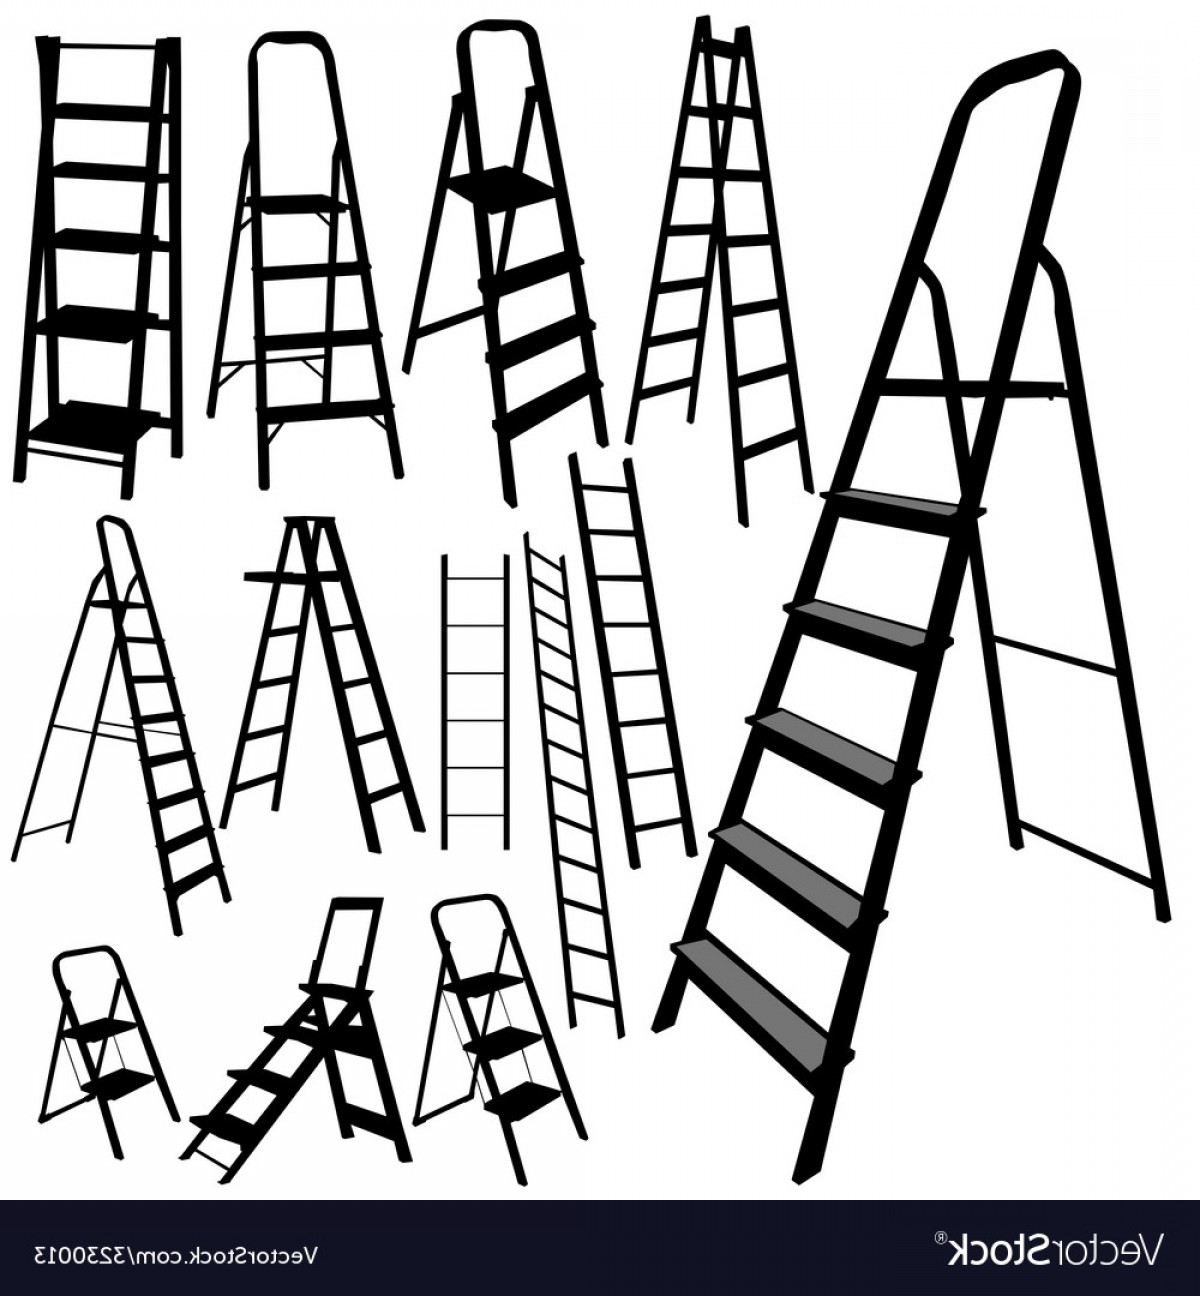 Ladder Silhouette Vector: Ladder Silhouette In Black Color Vector